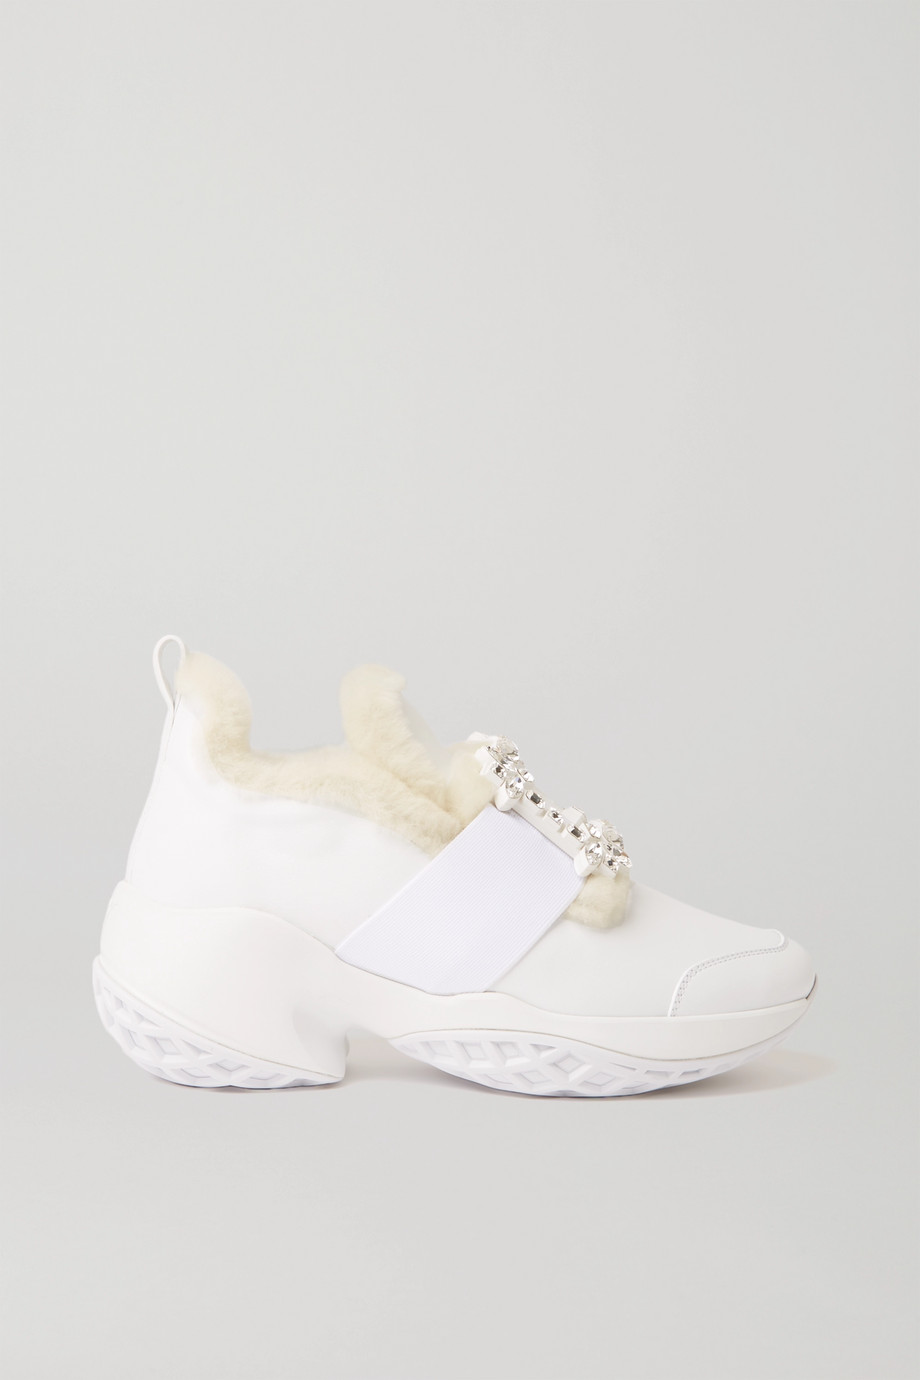 ROGER VIVIER Viv' Run crystal-embellished shearling-trimmed leather sneakers